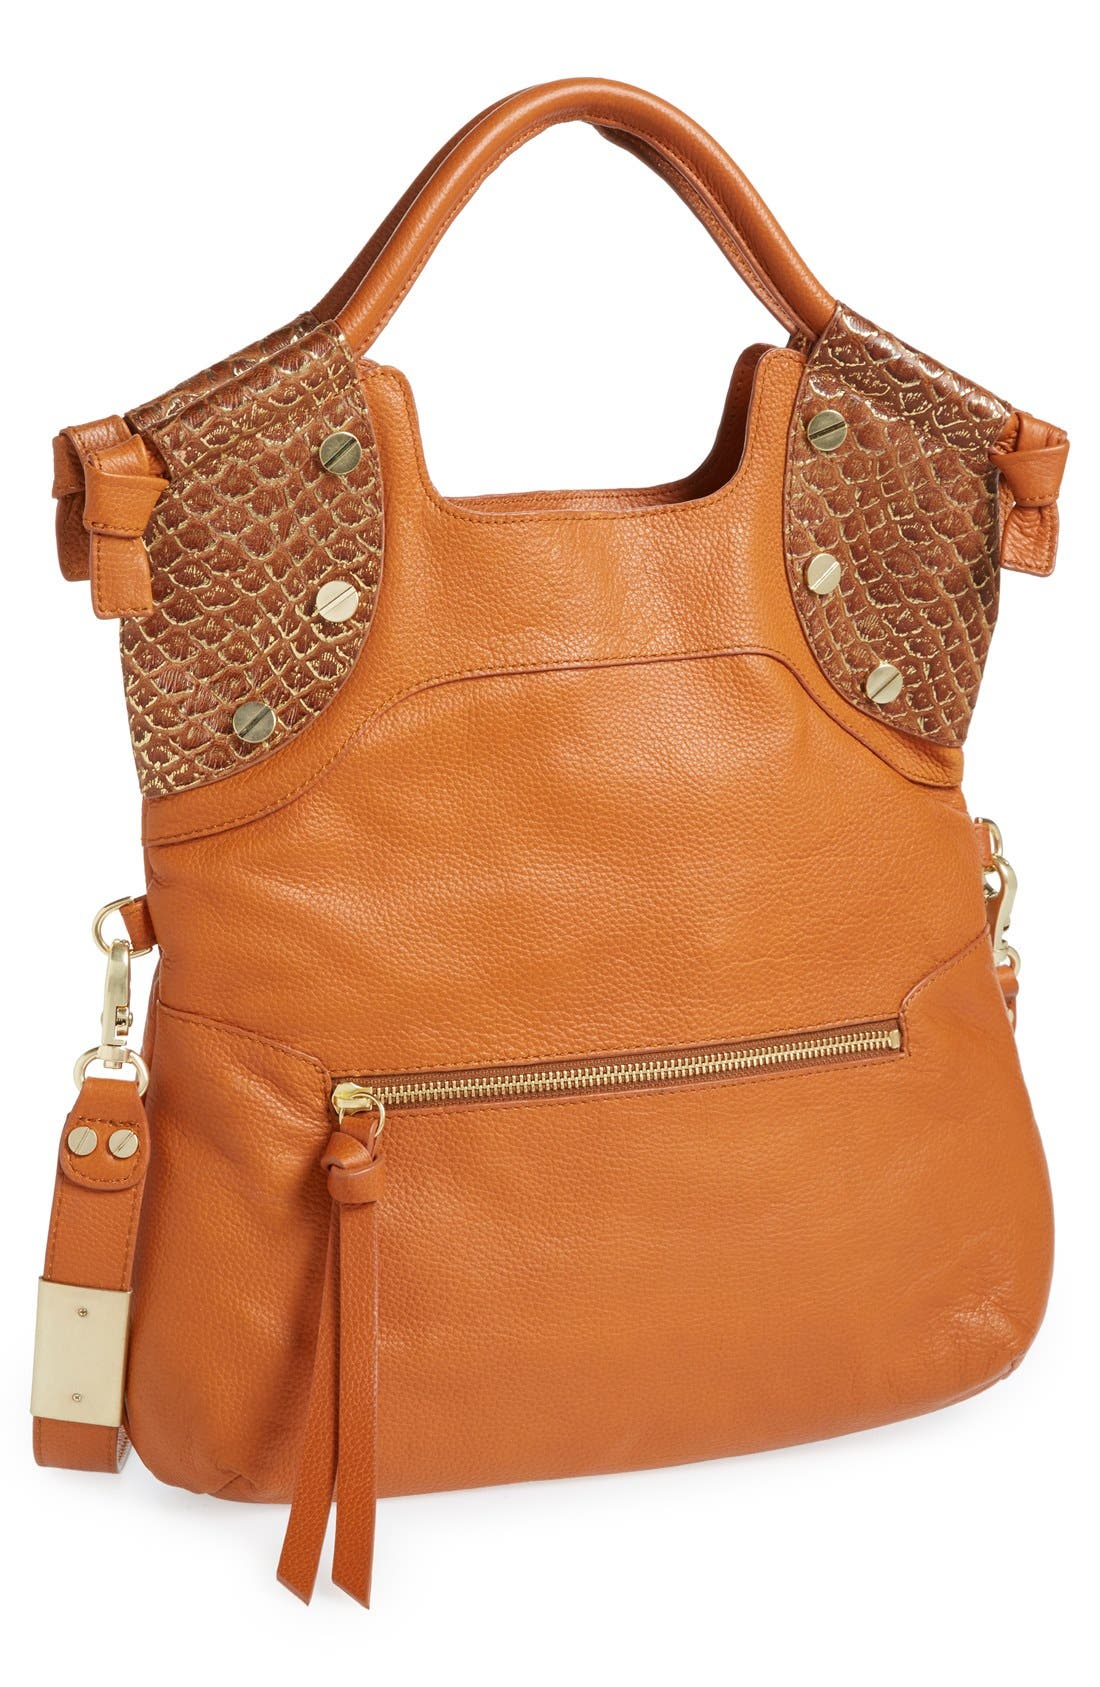 Alternate Image 1 Selected - Foley + Corinna 'FC Lady' Crossbody Tote